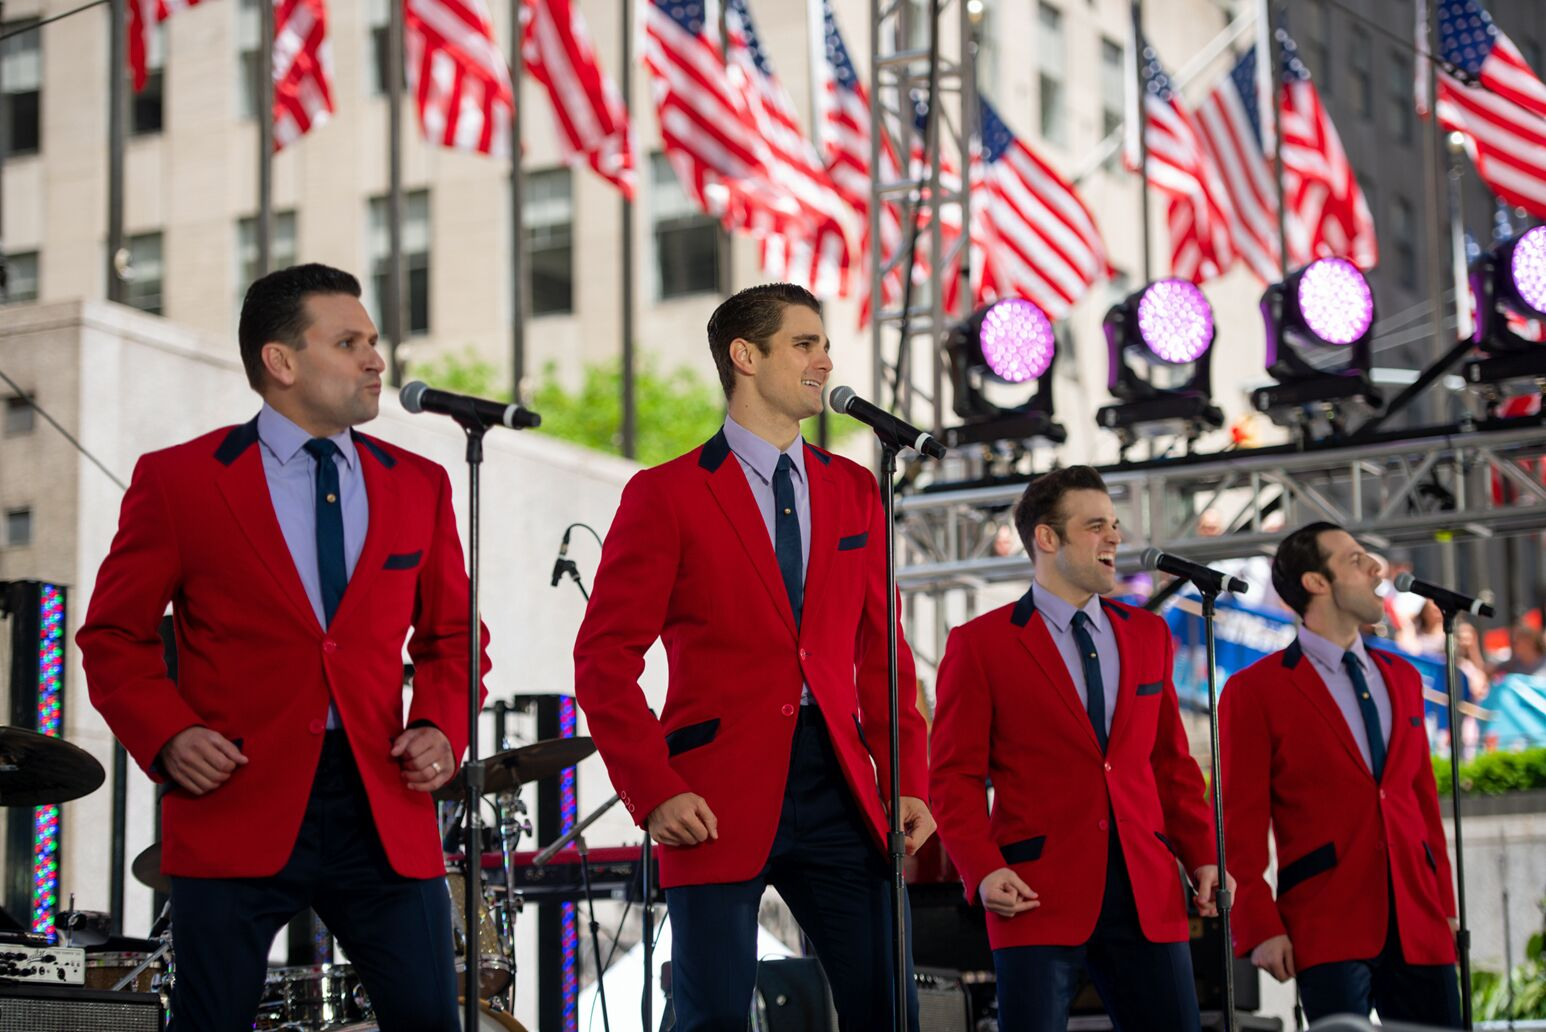 A performance of Jersey Boys